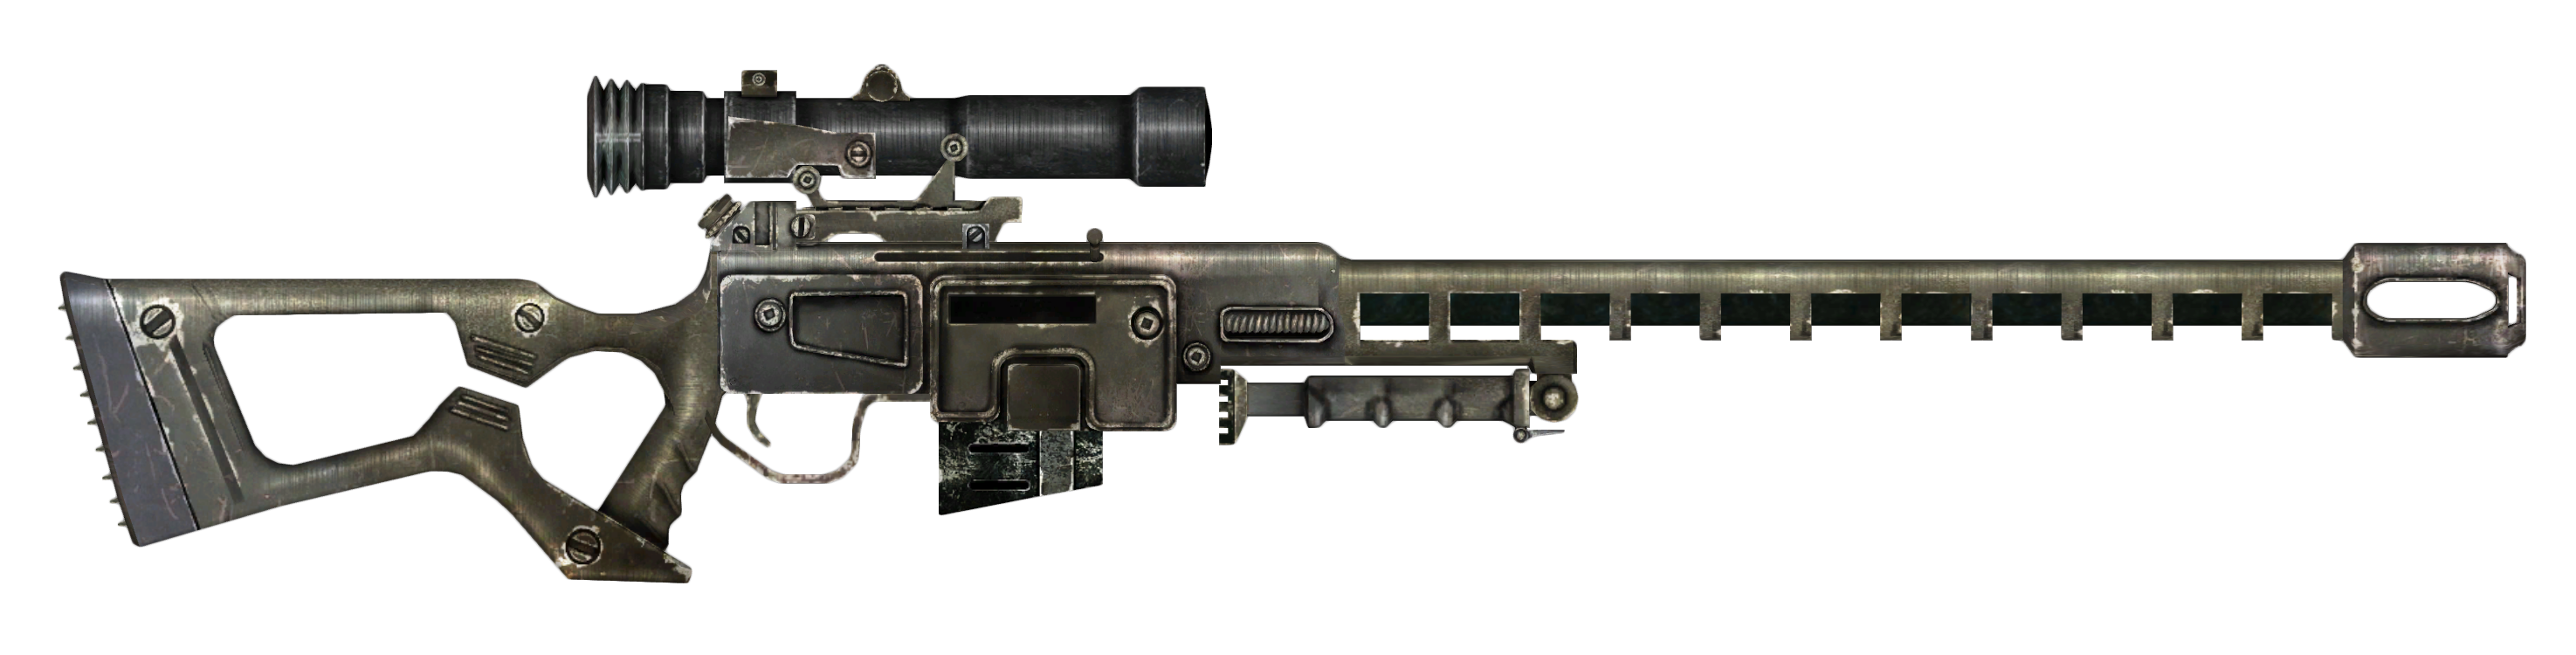 Ayra Blackheart Sniper_rifle